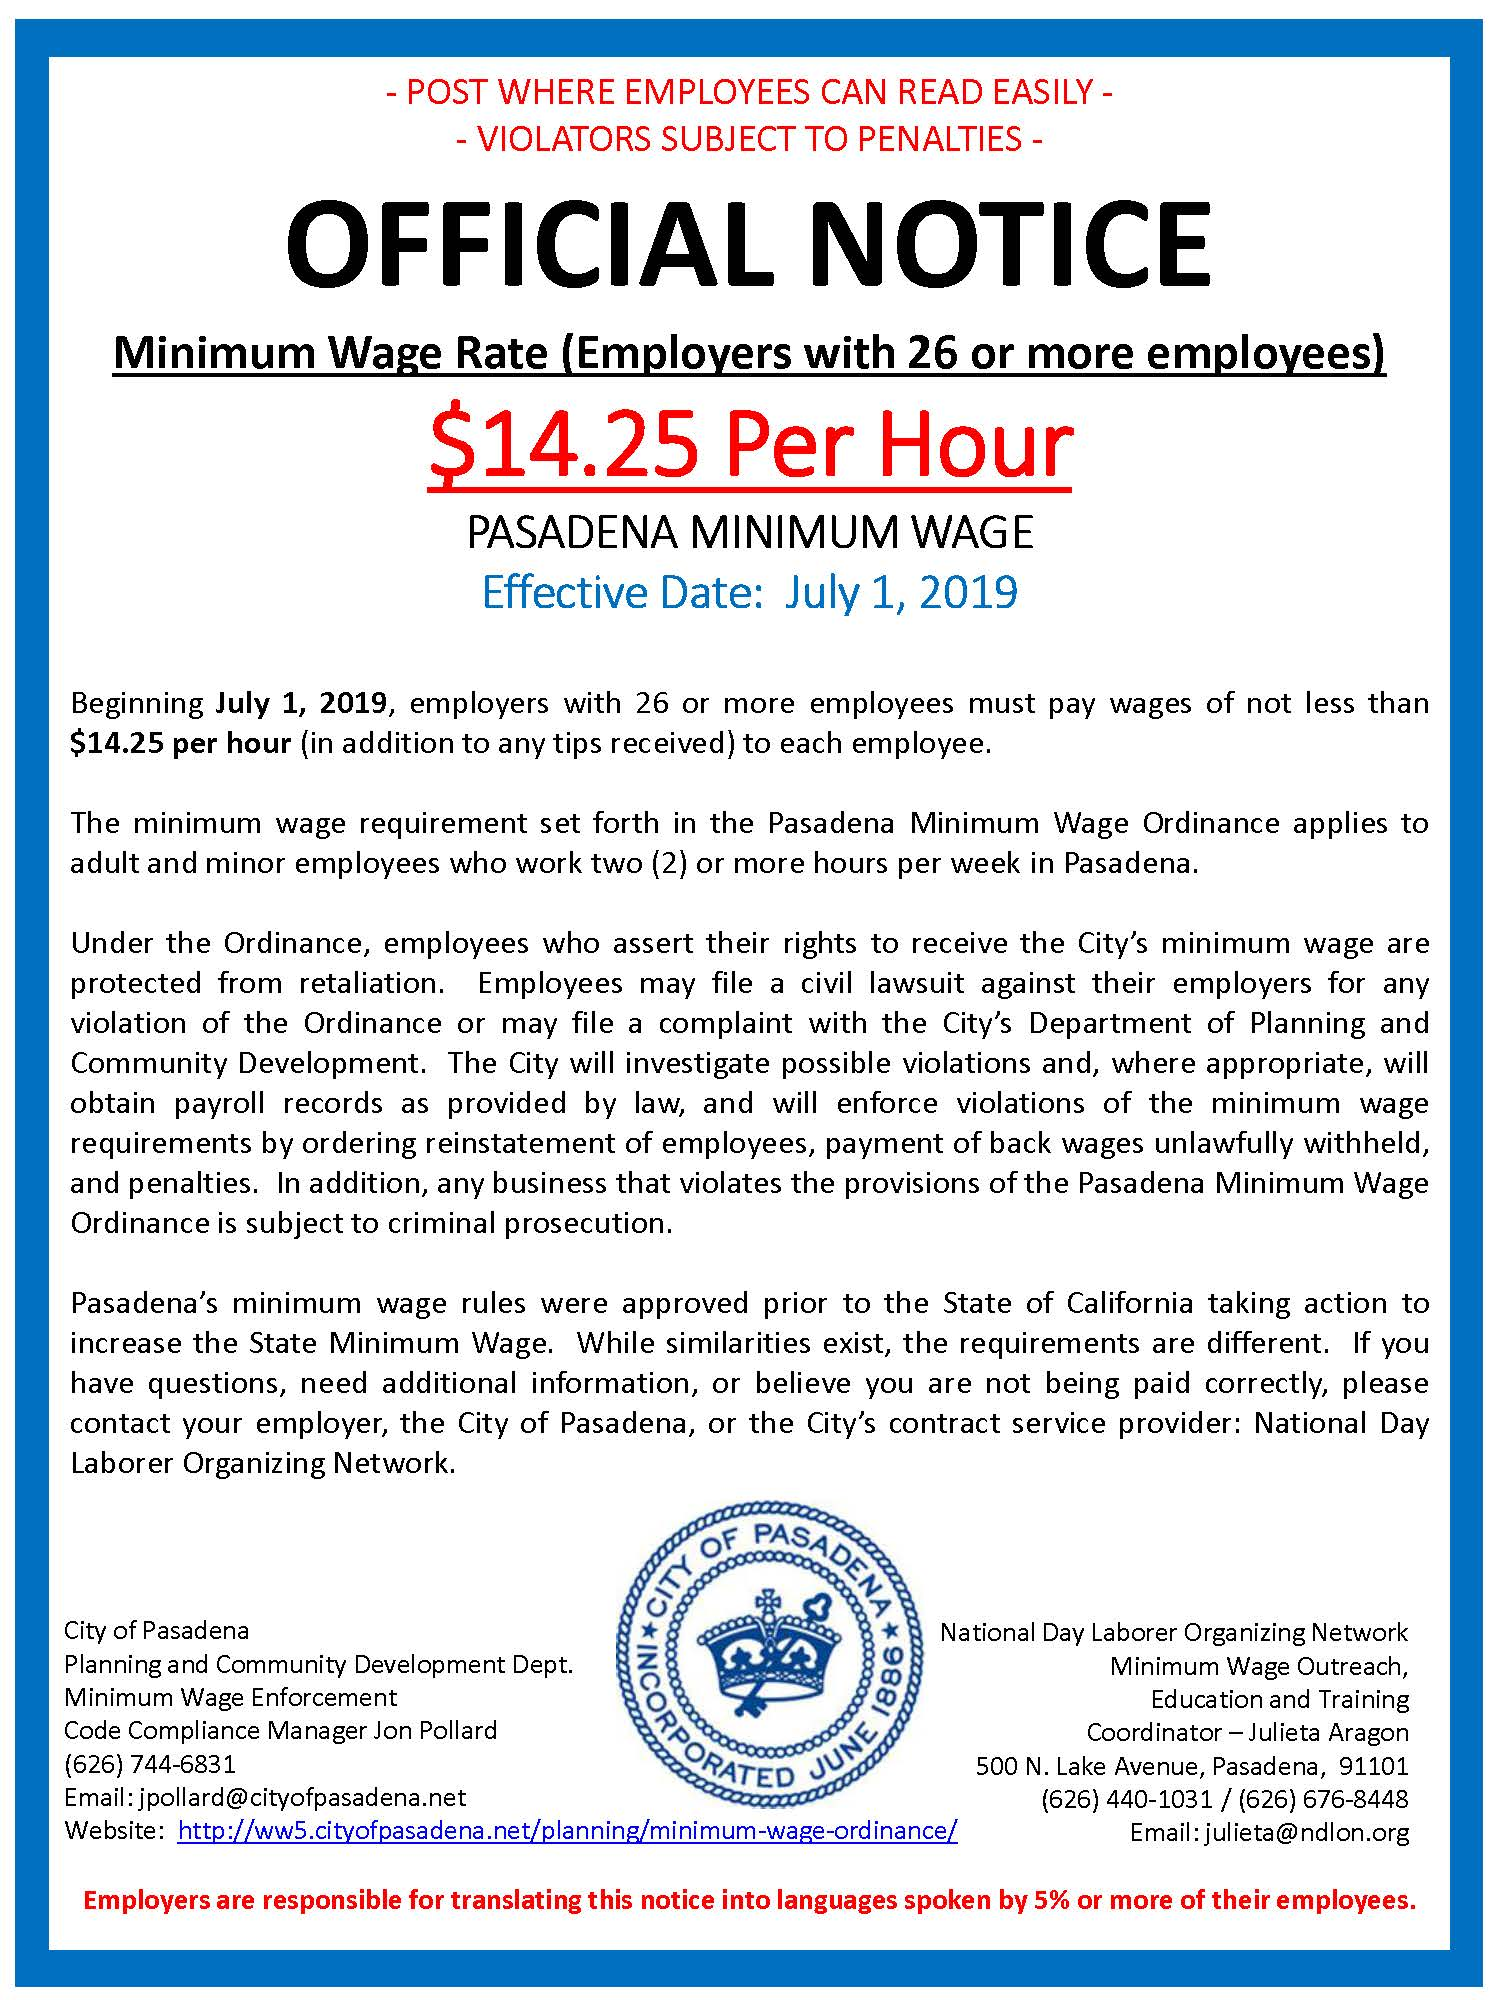 Minimum Wage Information - Planning & Community Development